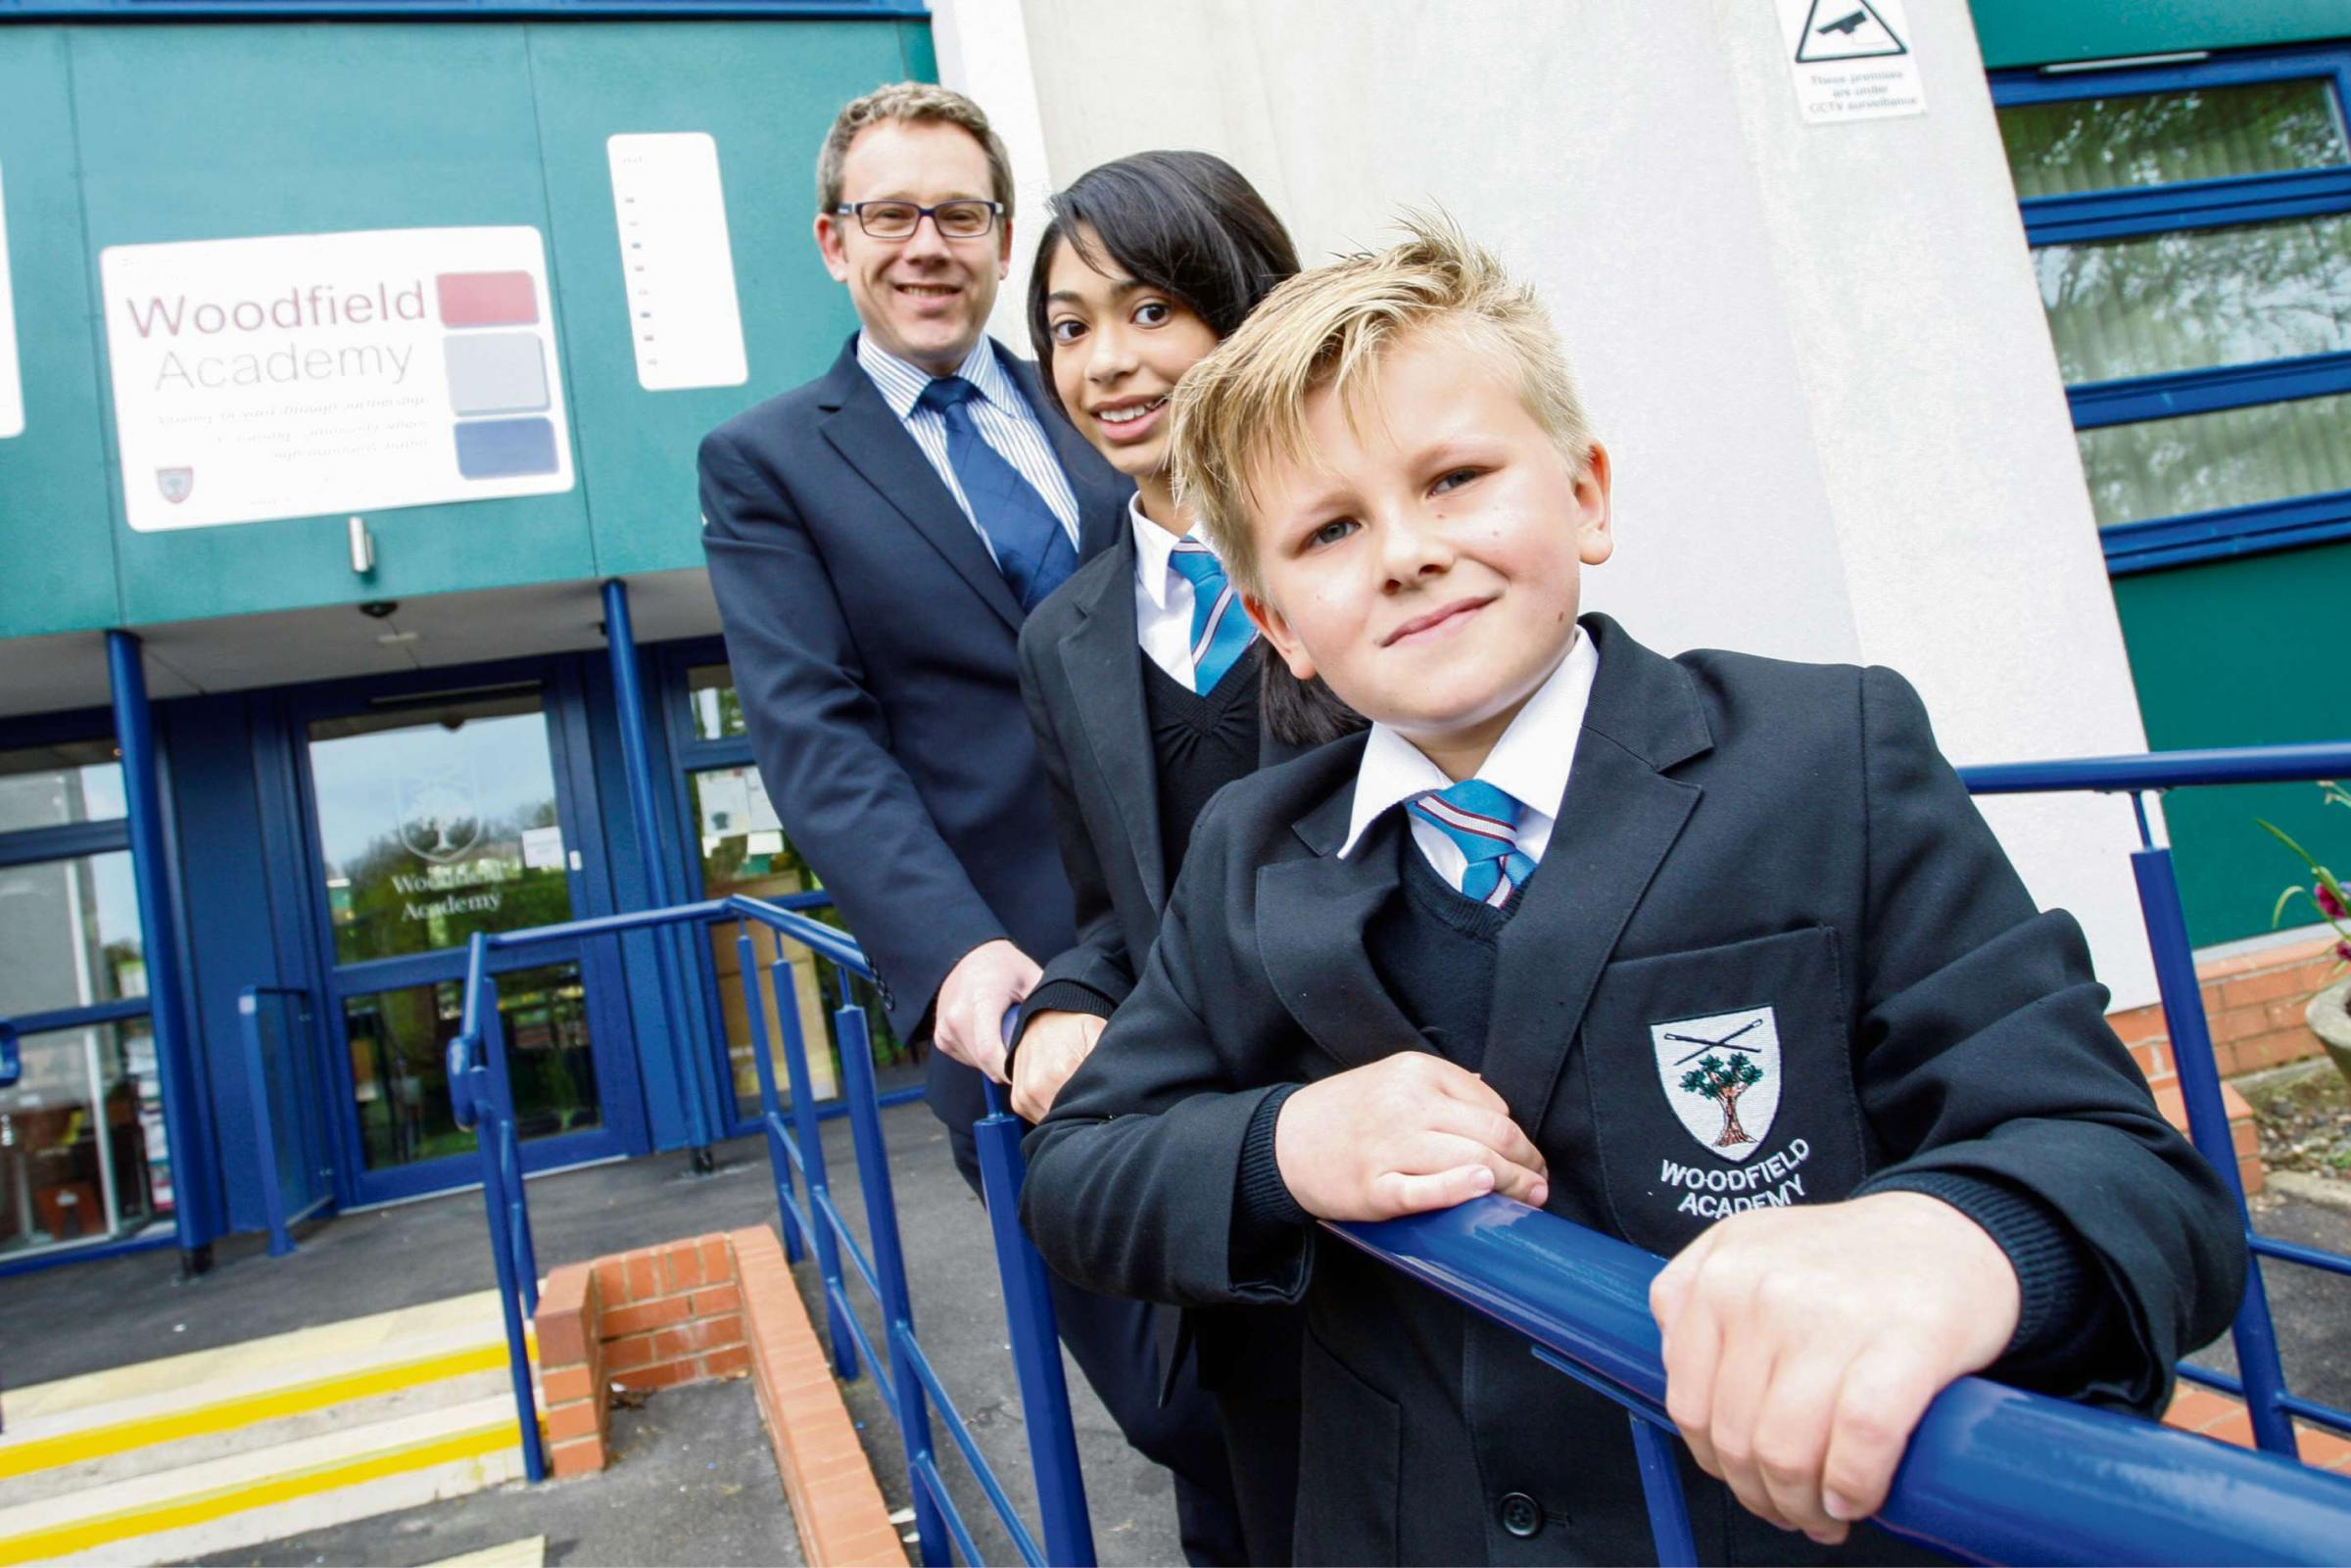 New headteacher Stephen Bond with pupils Luke Taylor and Ismat Qureshi. Buy this photo Ref. RCR191402_01 at redditchadvertiser.co.uk/pictures or call 01527 889027.